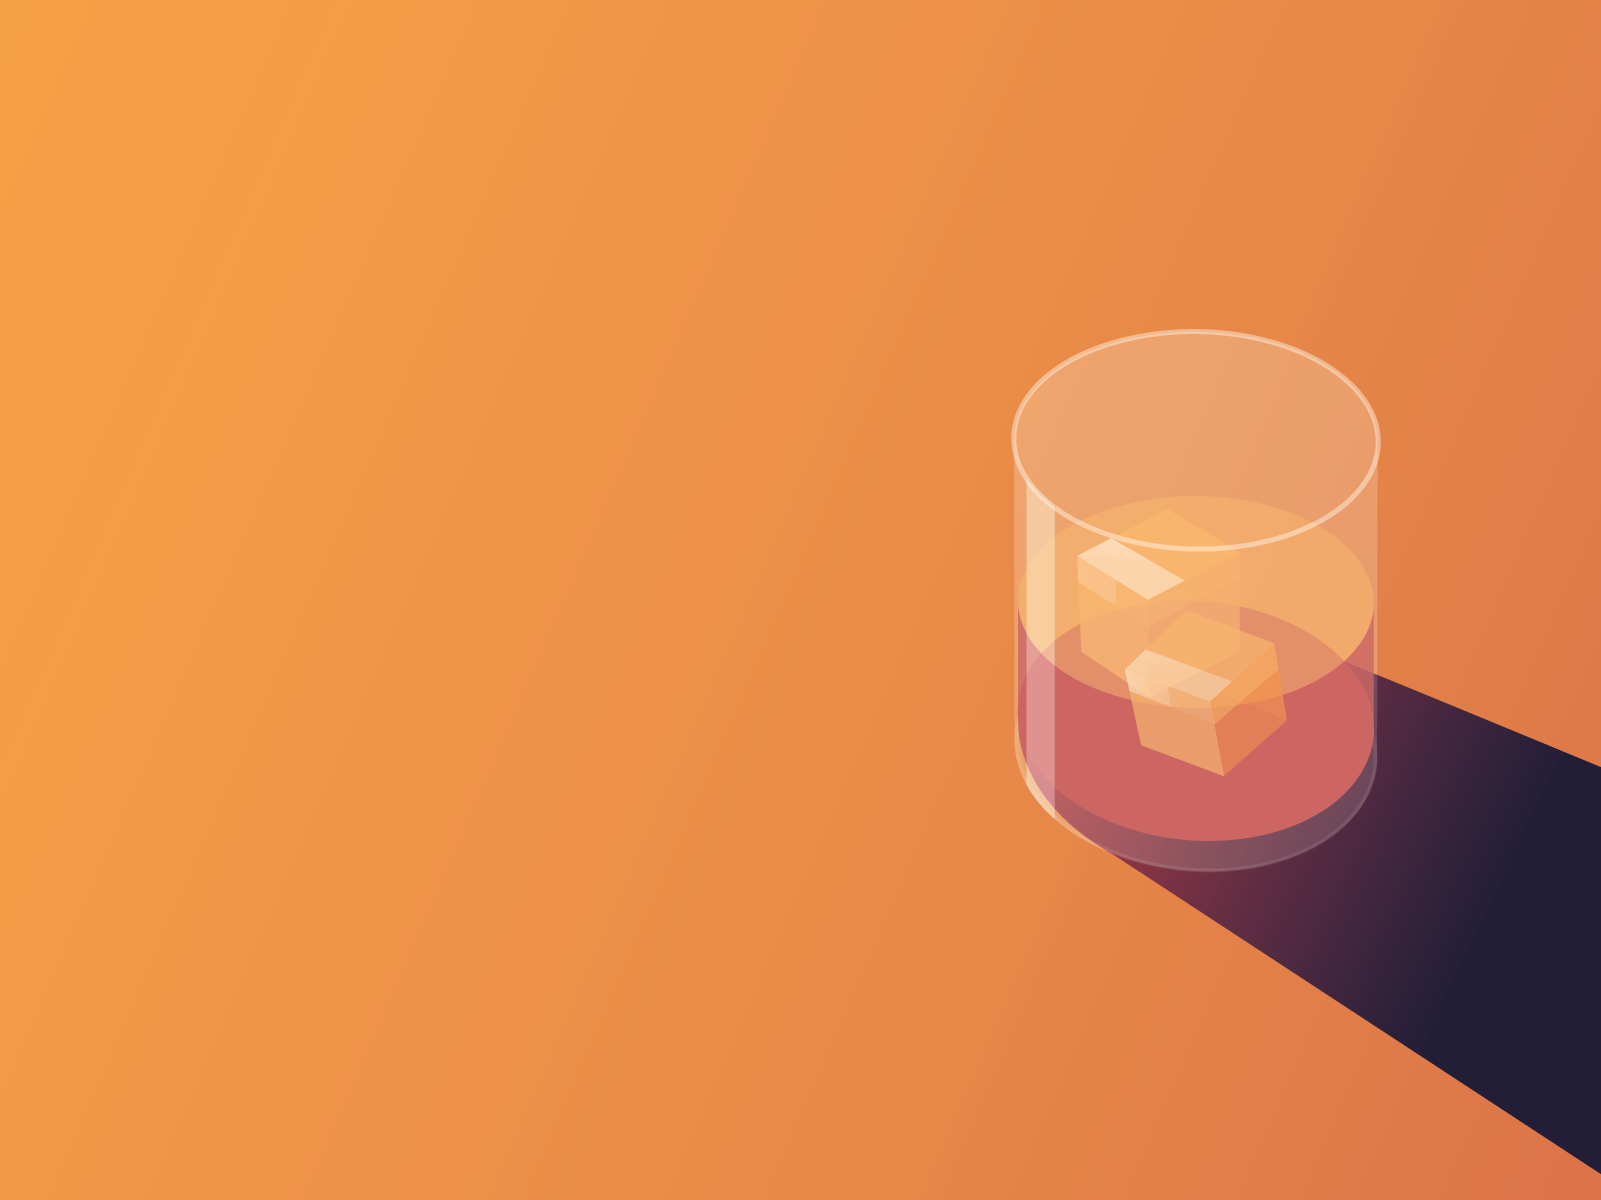 Illustration of whisky in glass